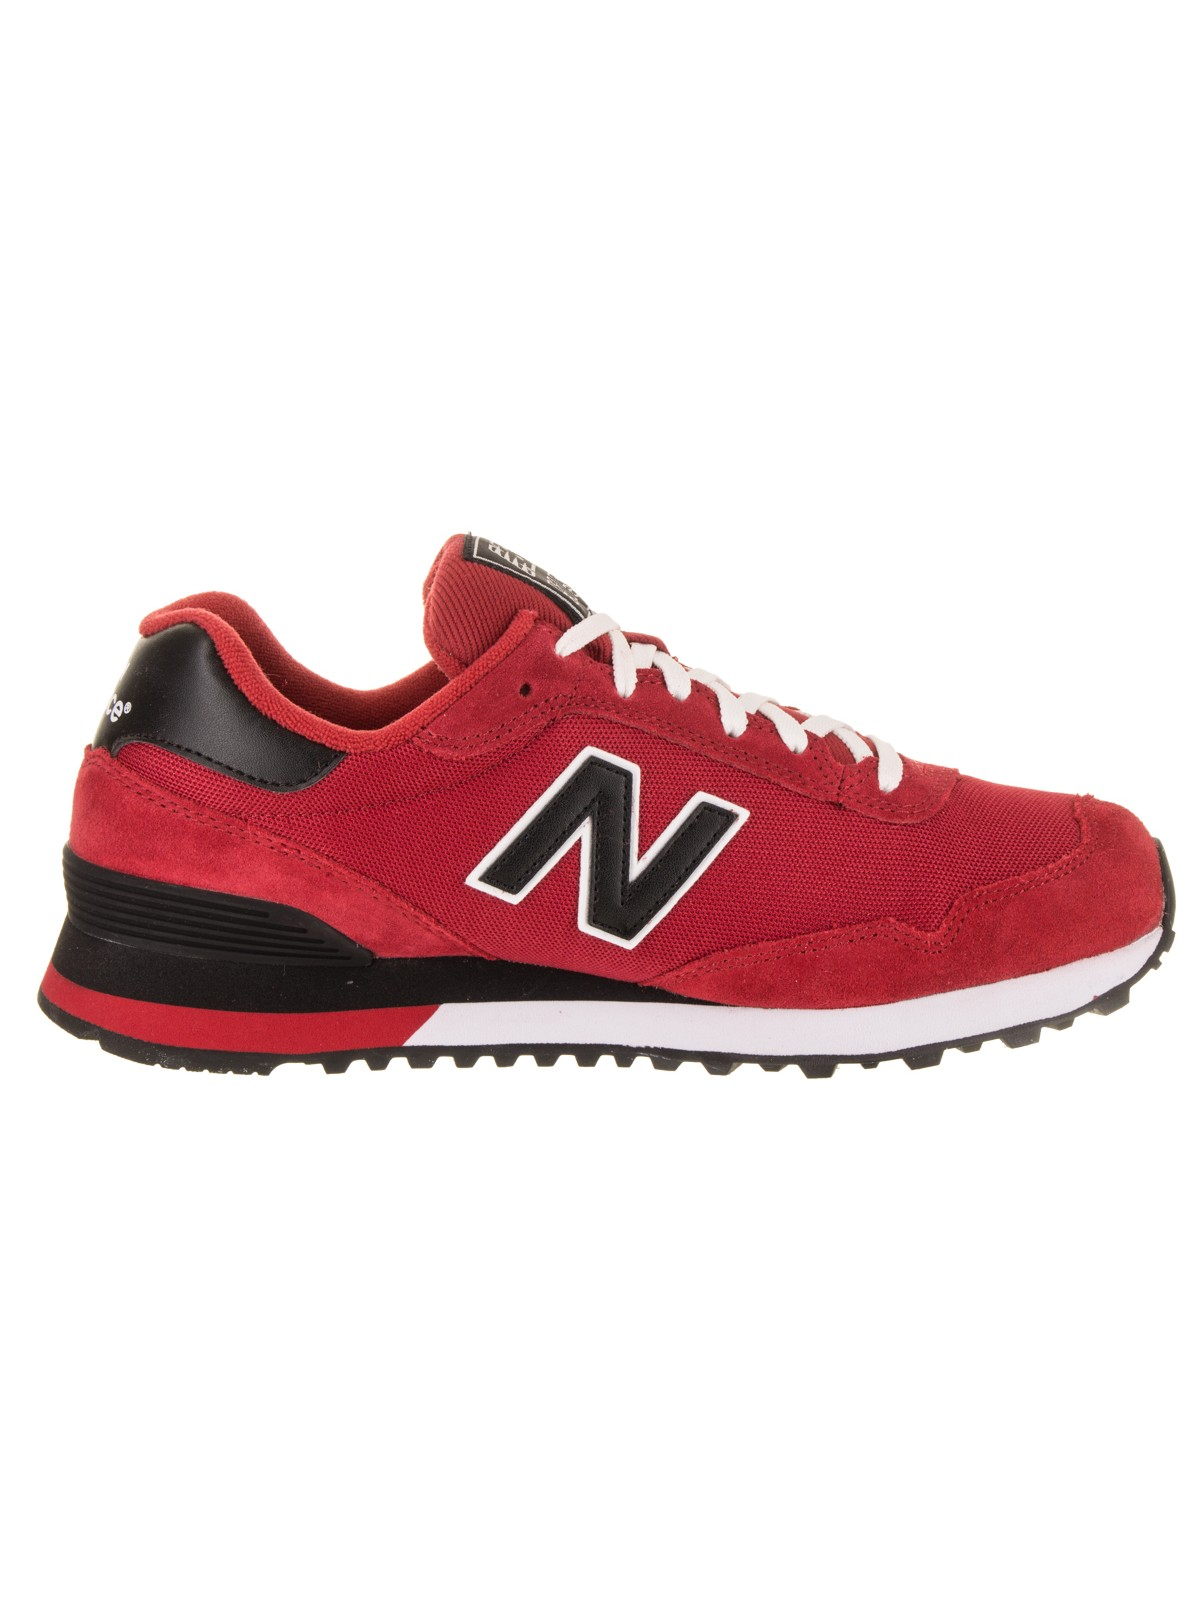 New Balance Men's 515 Classics Running Shoe